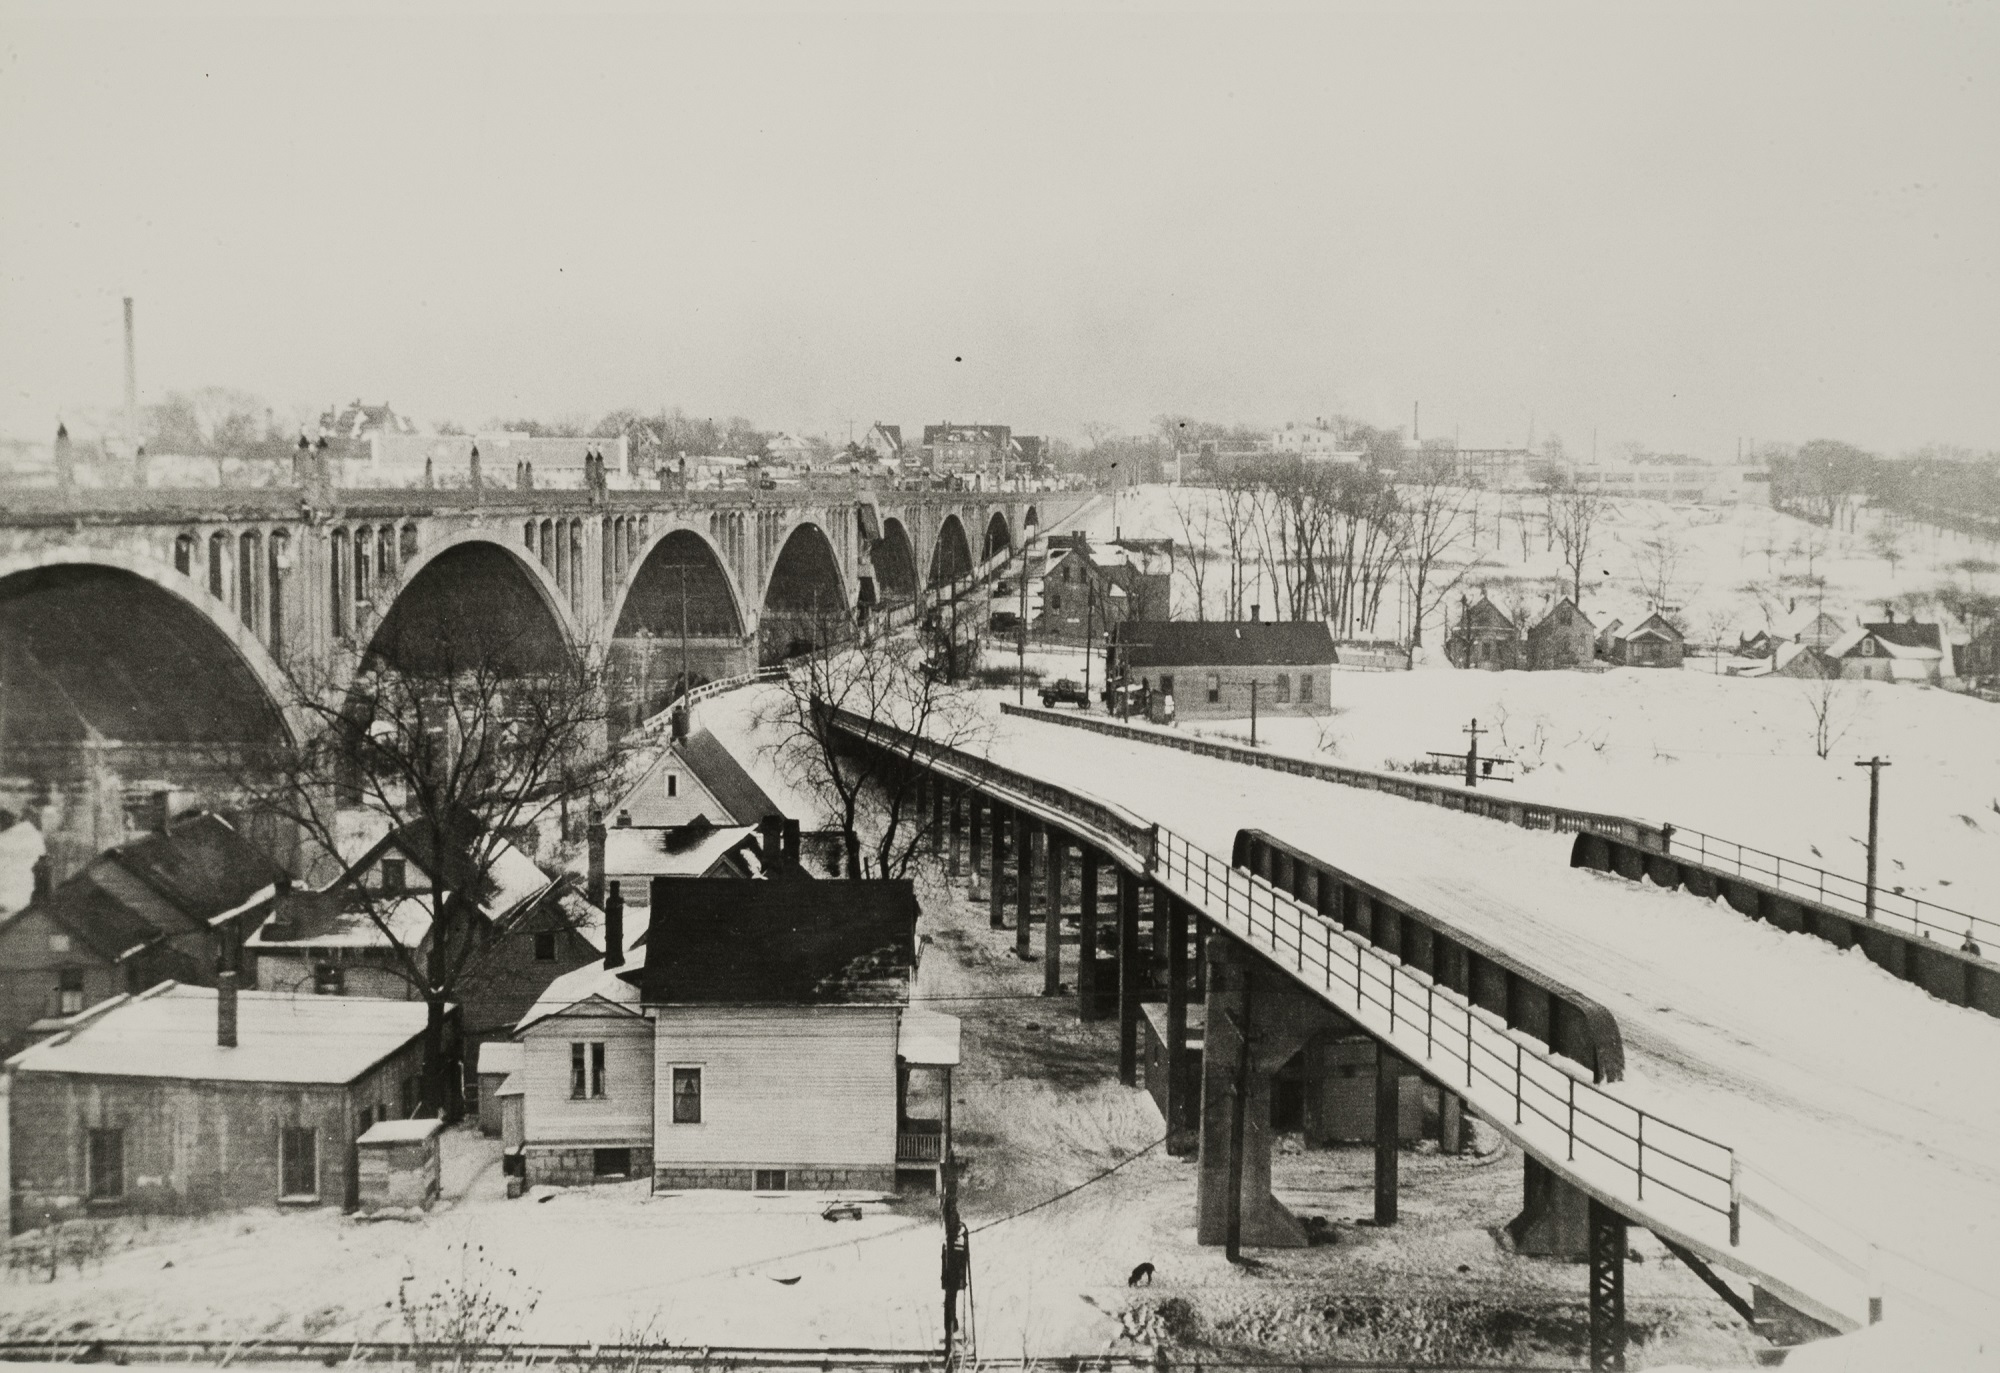 The northwest portion of the Piggsville neighborhood was once located around and beneath the Wisconsin Avenue viaduct after its construction was completed in 1911.